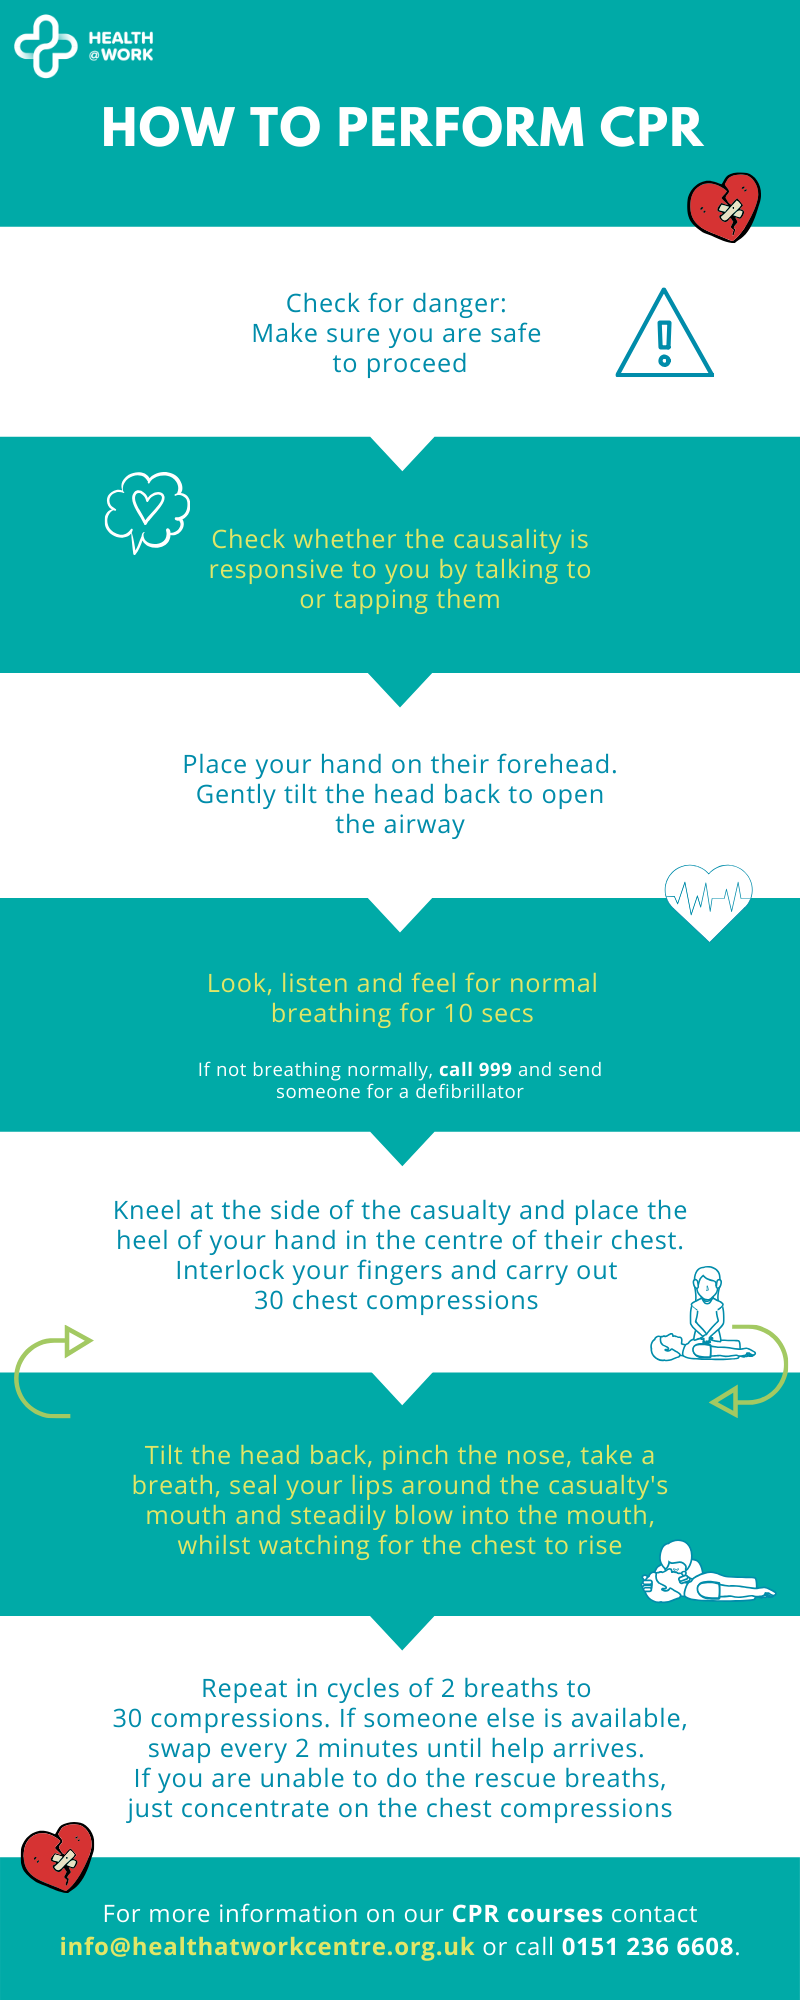 How to perform CPR infographic